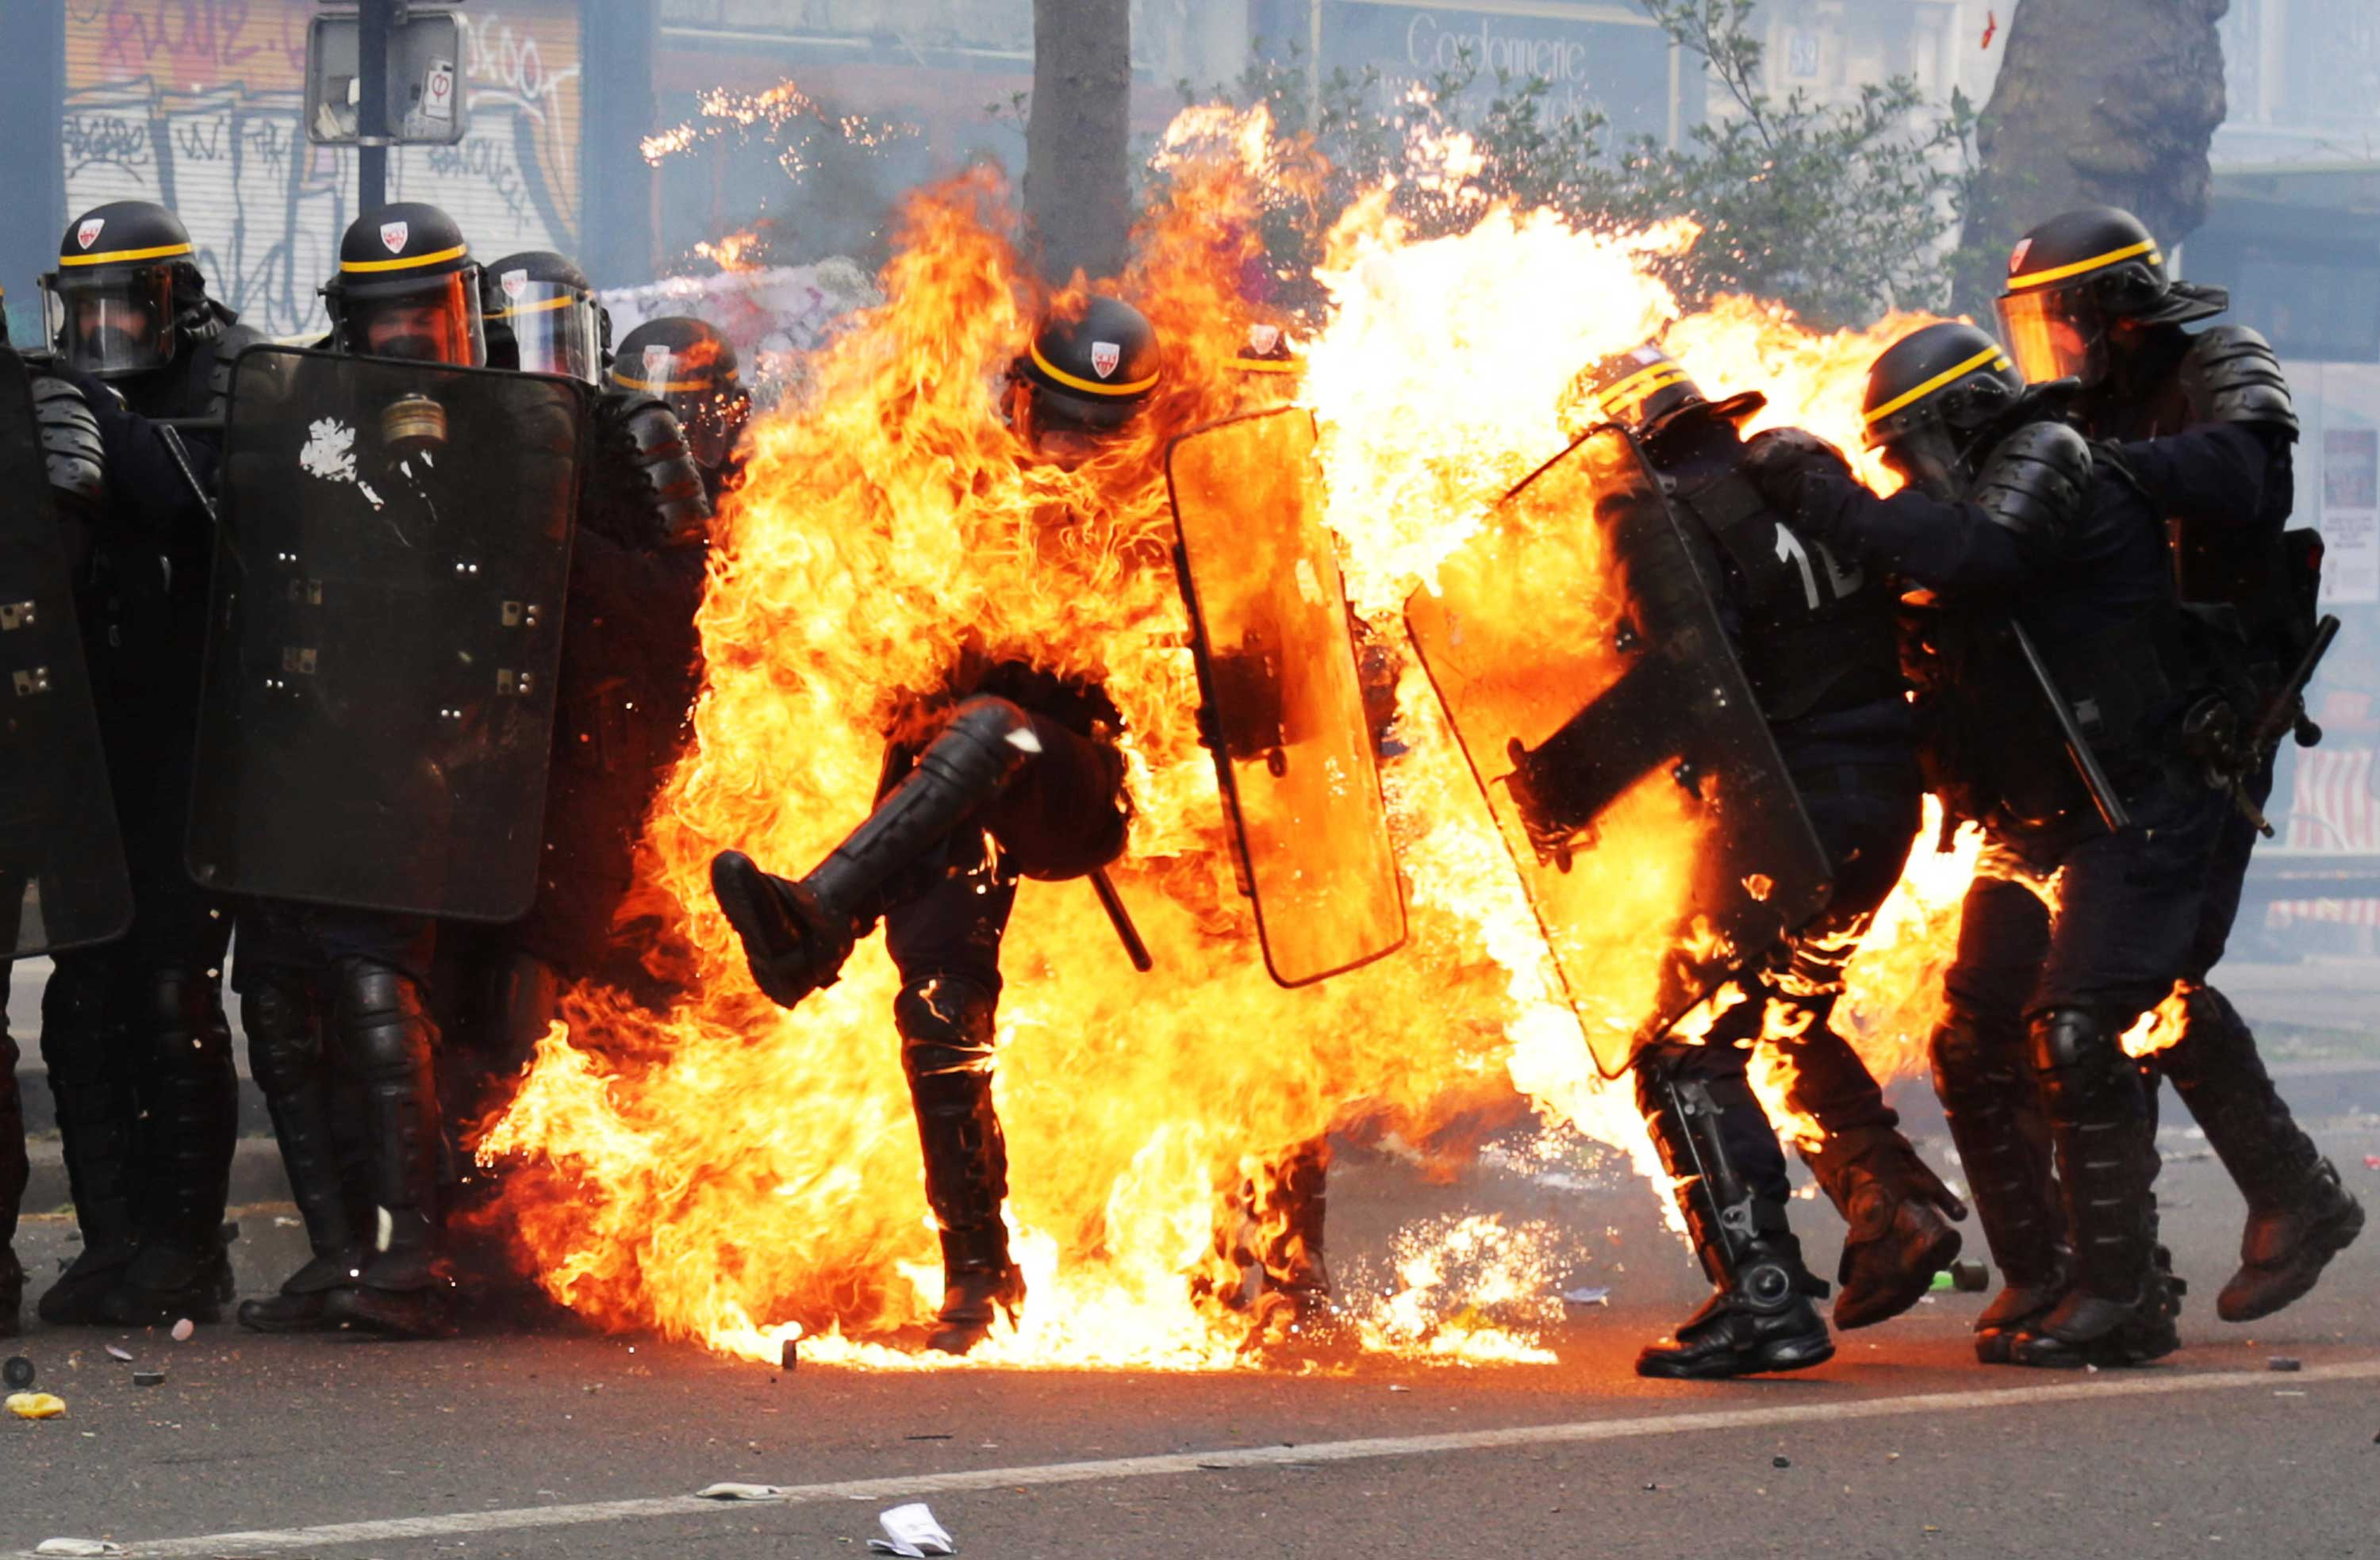 Policeman On Fire The Story Behind The Viral Photograph Time